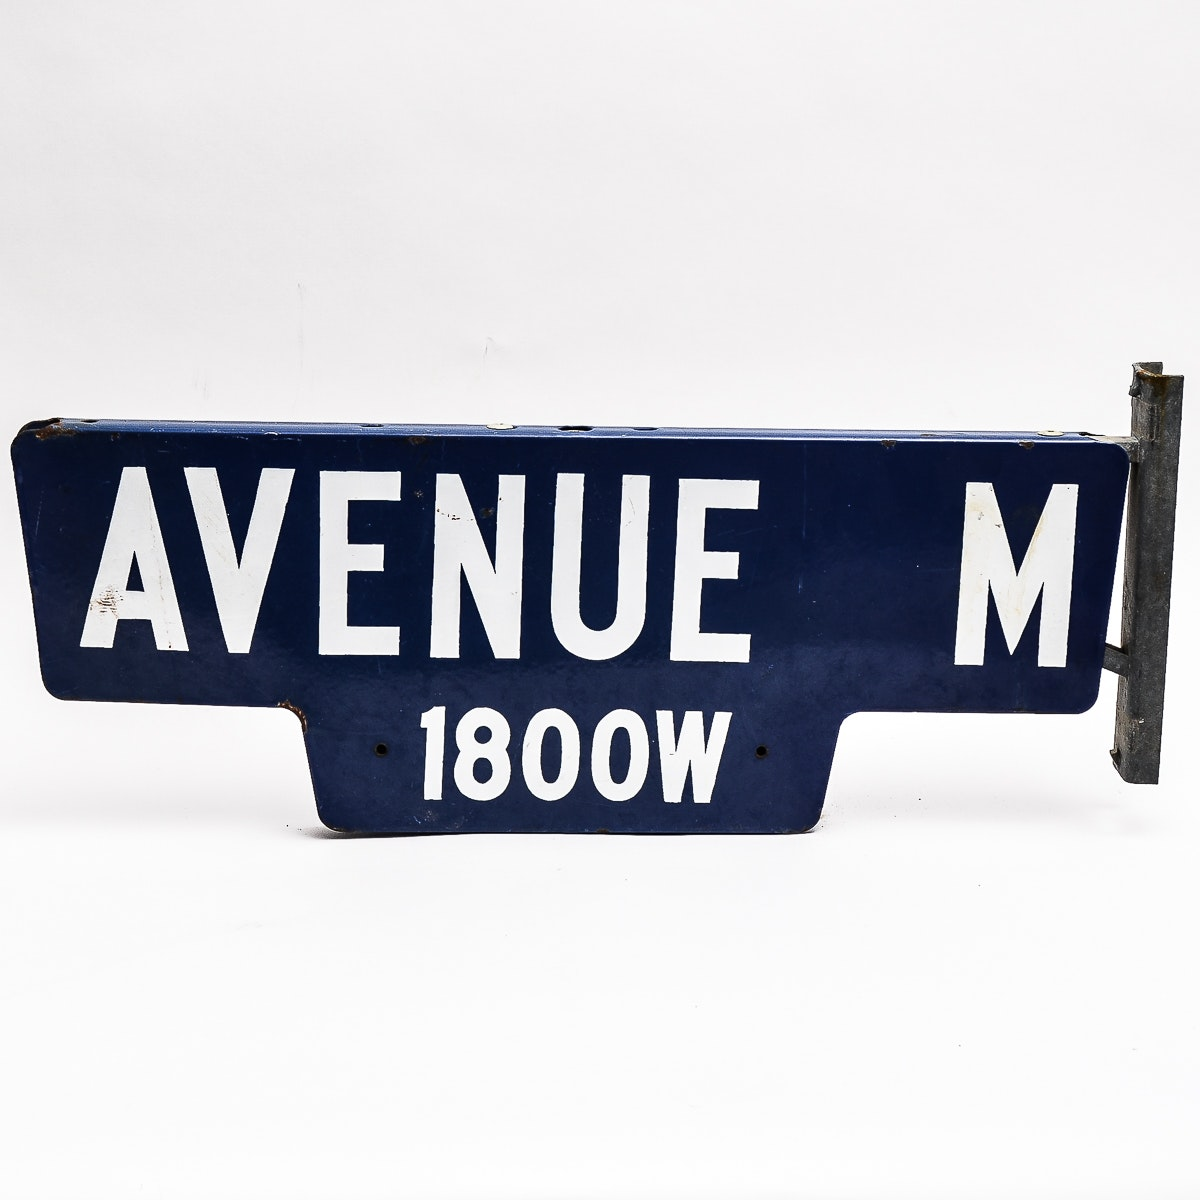 Vintage Enameled Street Sign